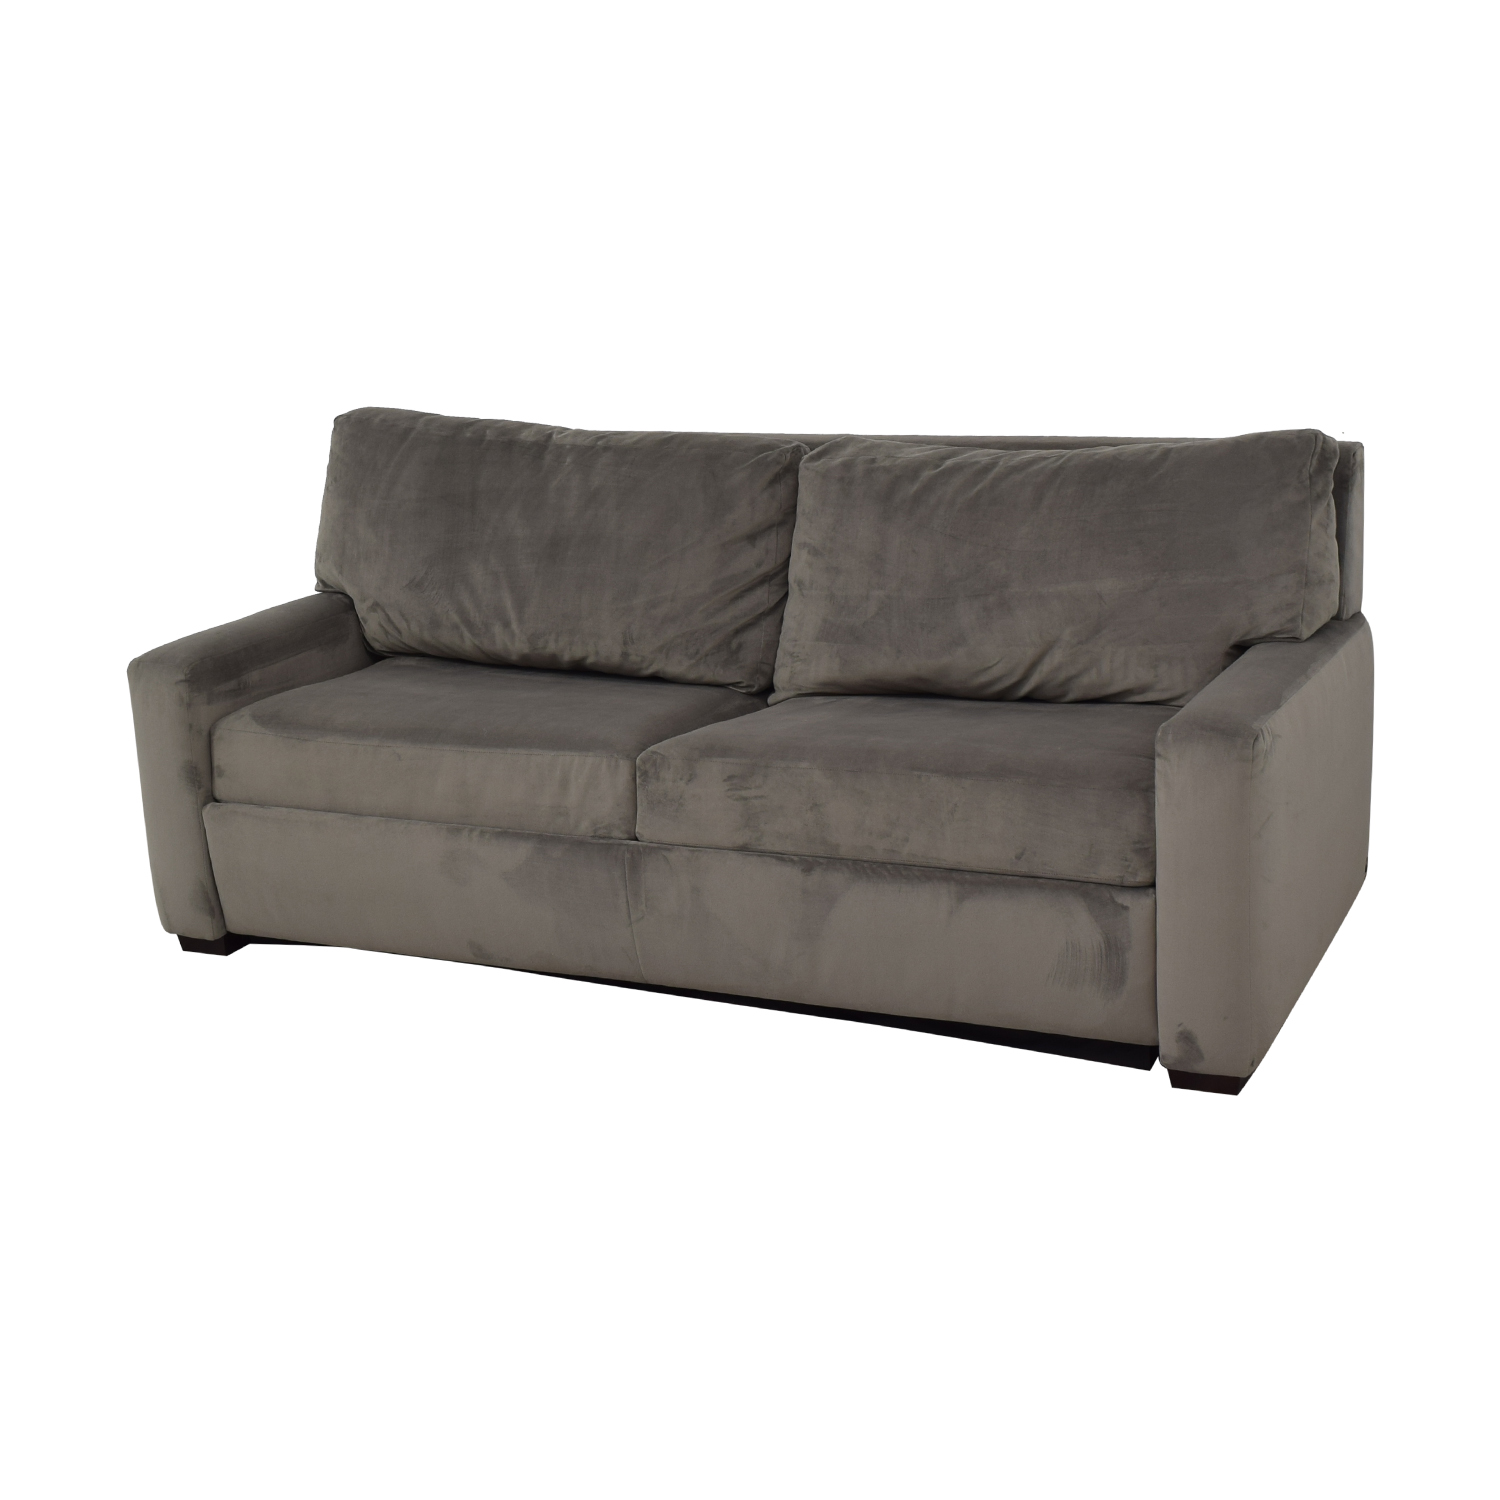 American Leather Cassidy Comfort Sleeper Sofa sale